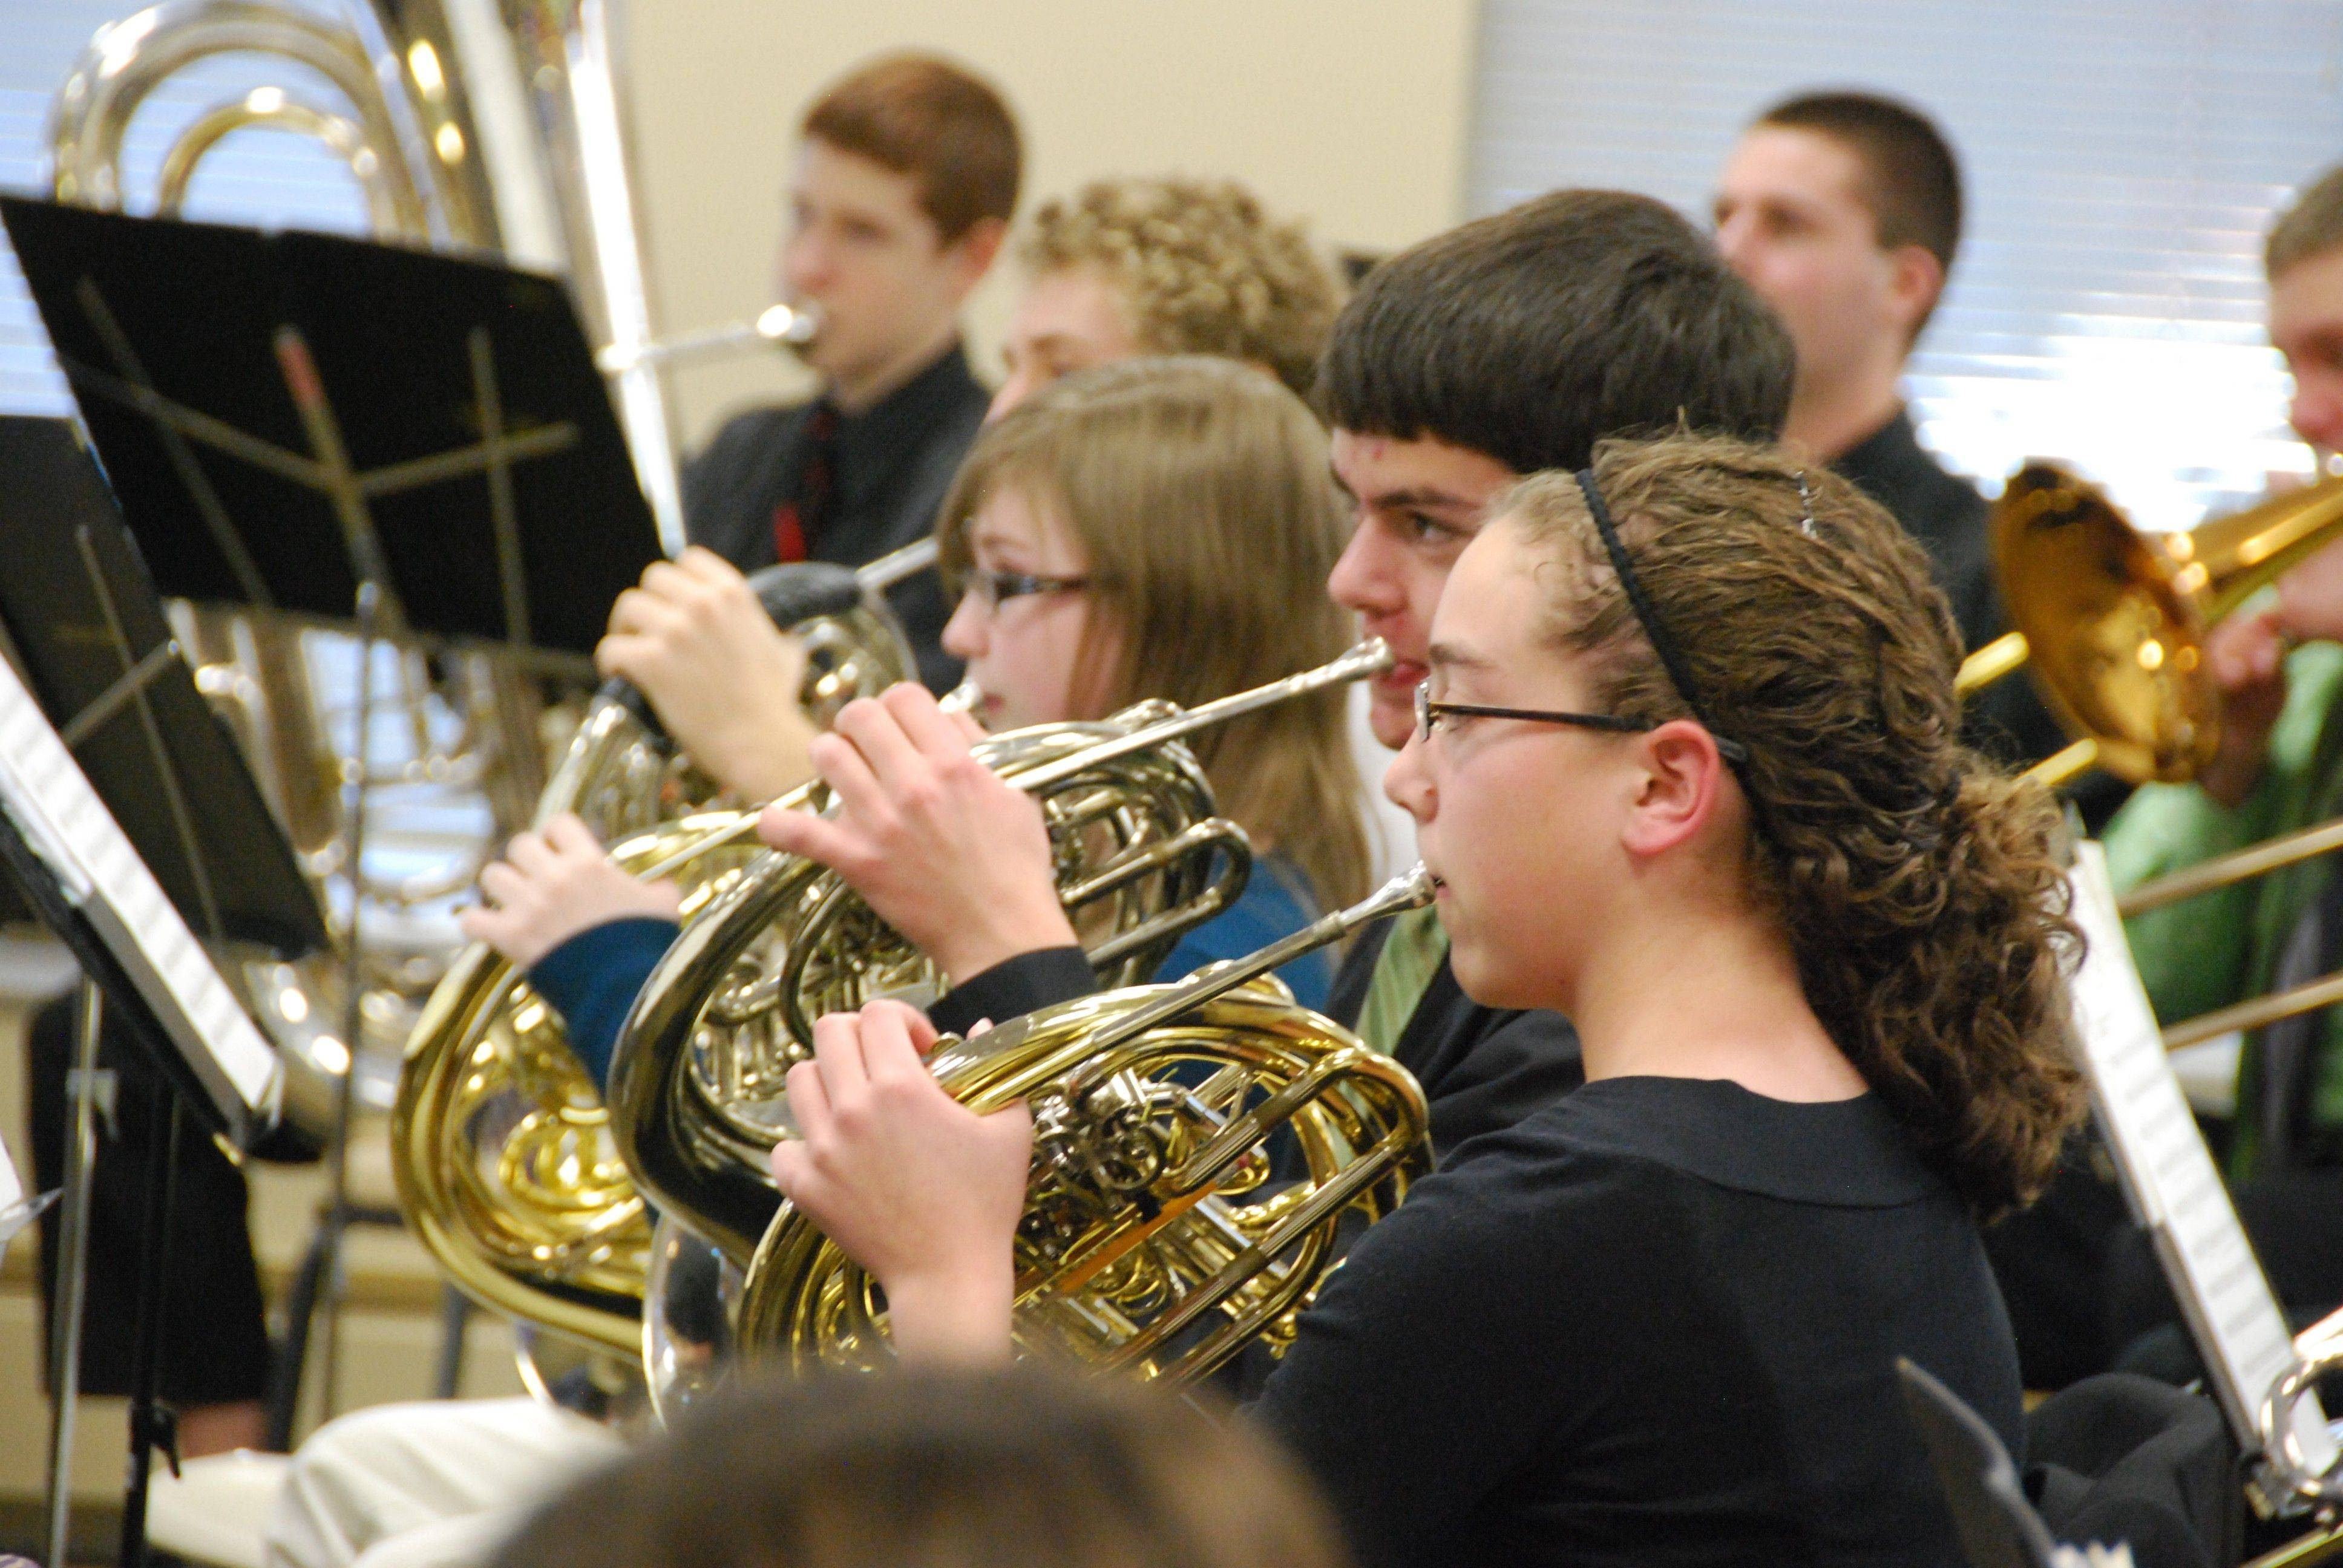 The Fremd High School band practices for the 2011 Chicagoland Concert Band Festival.